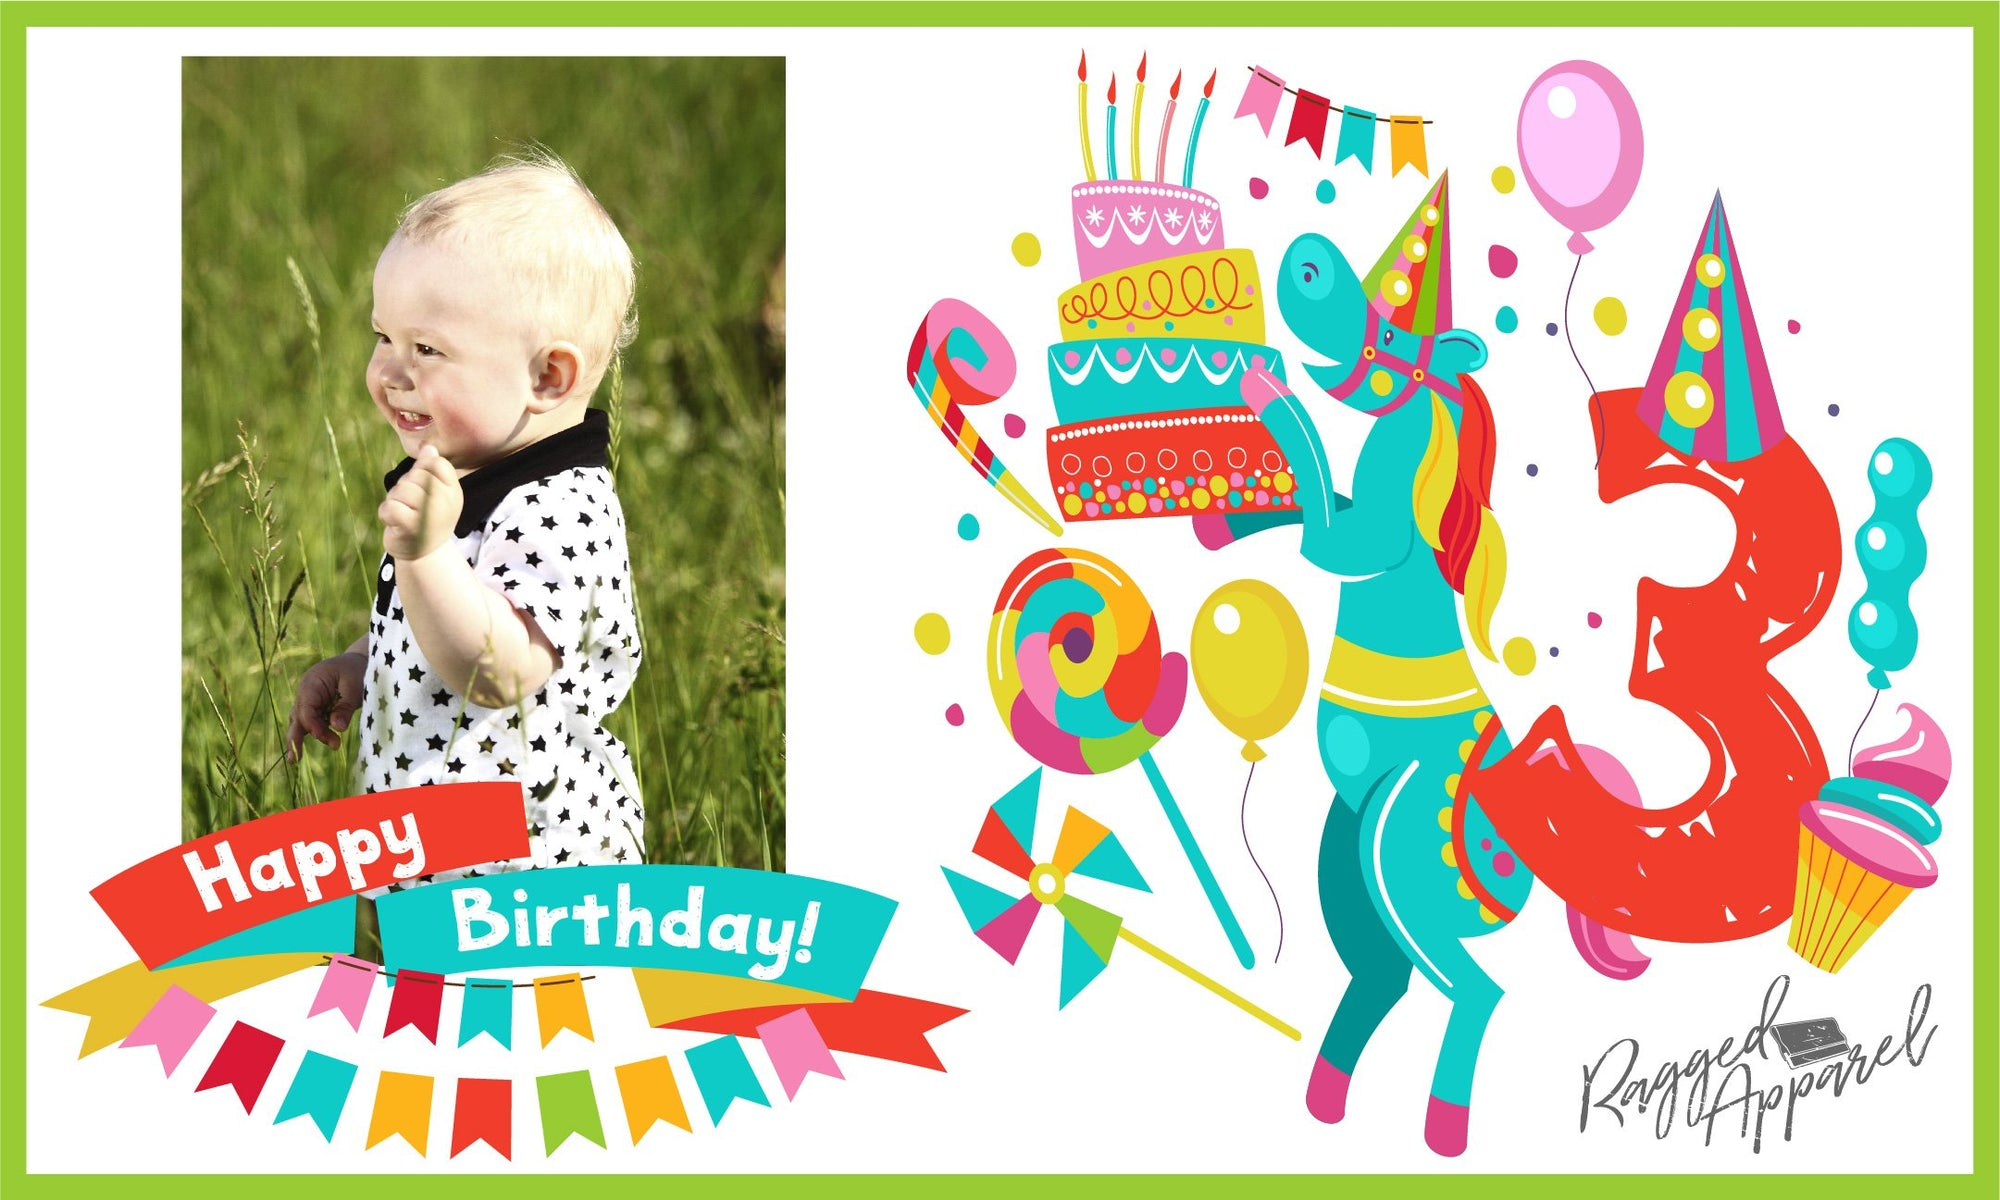 Kids Photo Birthday Banner With Personalized Age - Ragged Apparel Screen Printing and Signs - www.nmshirts.com